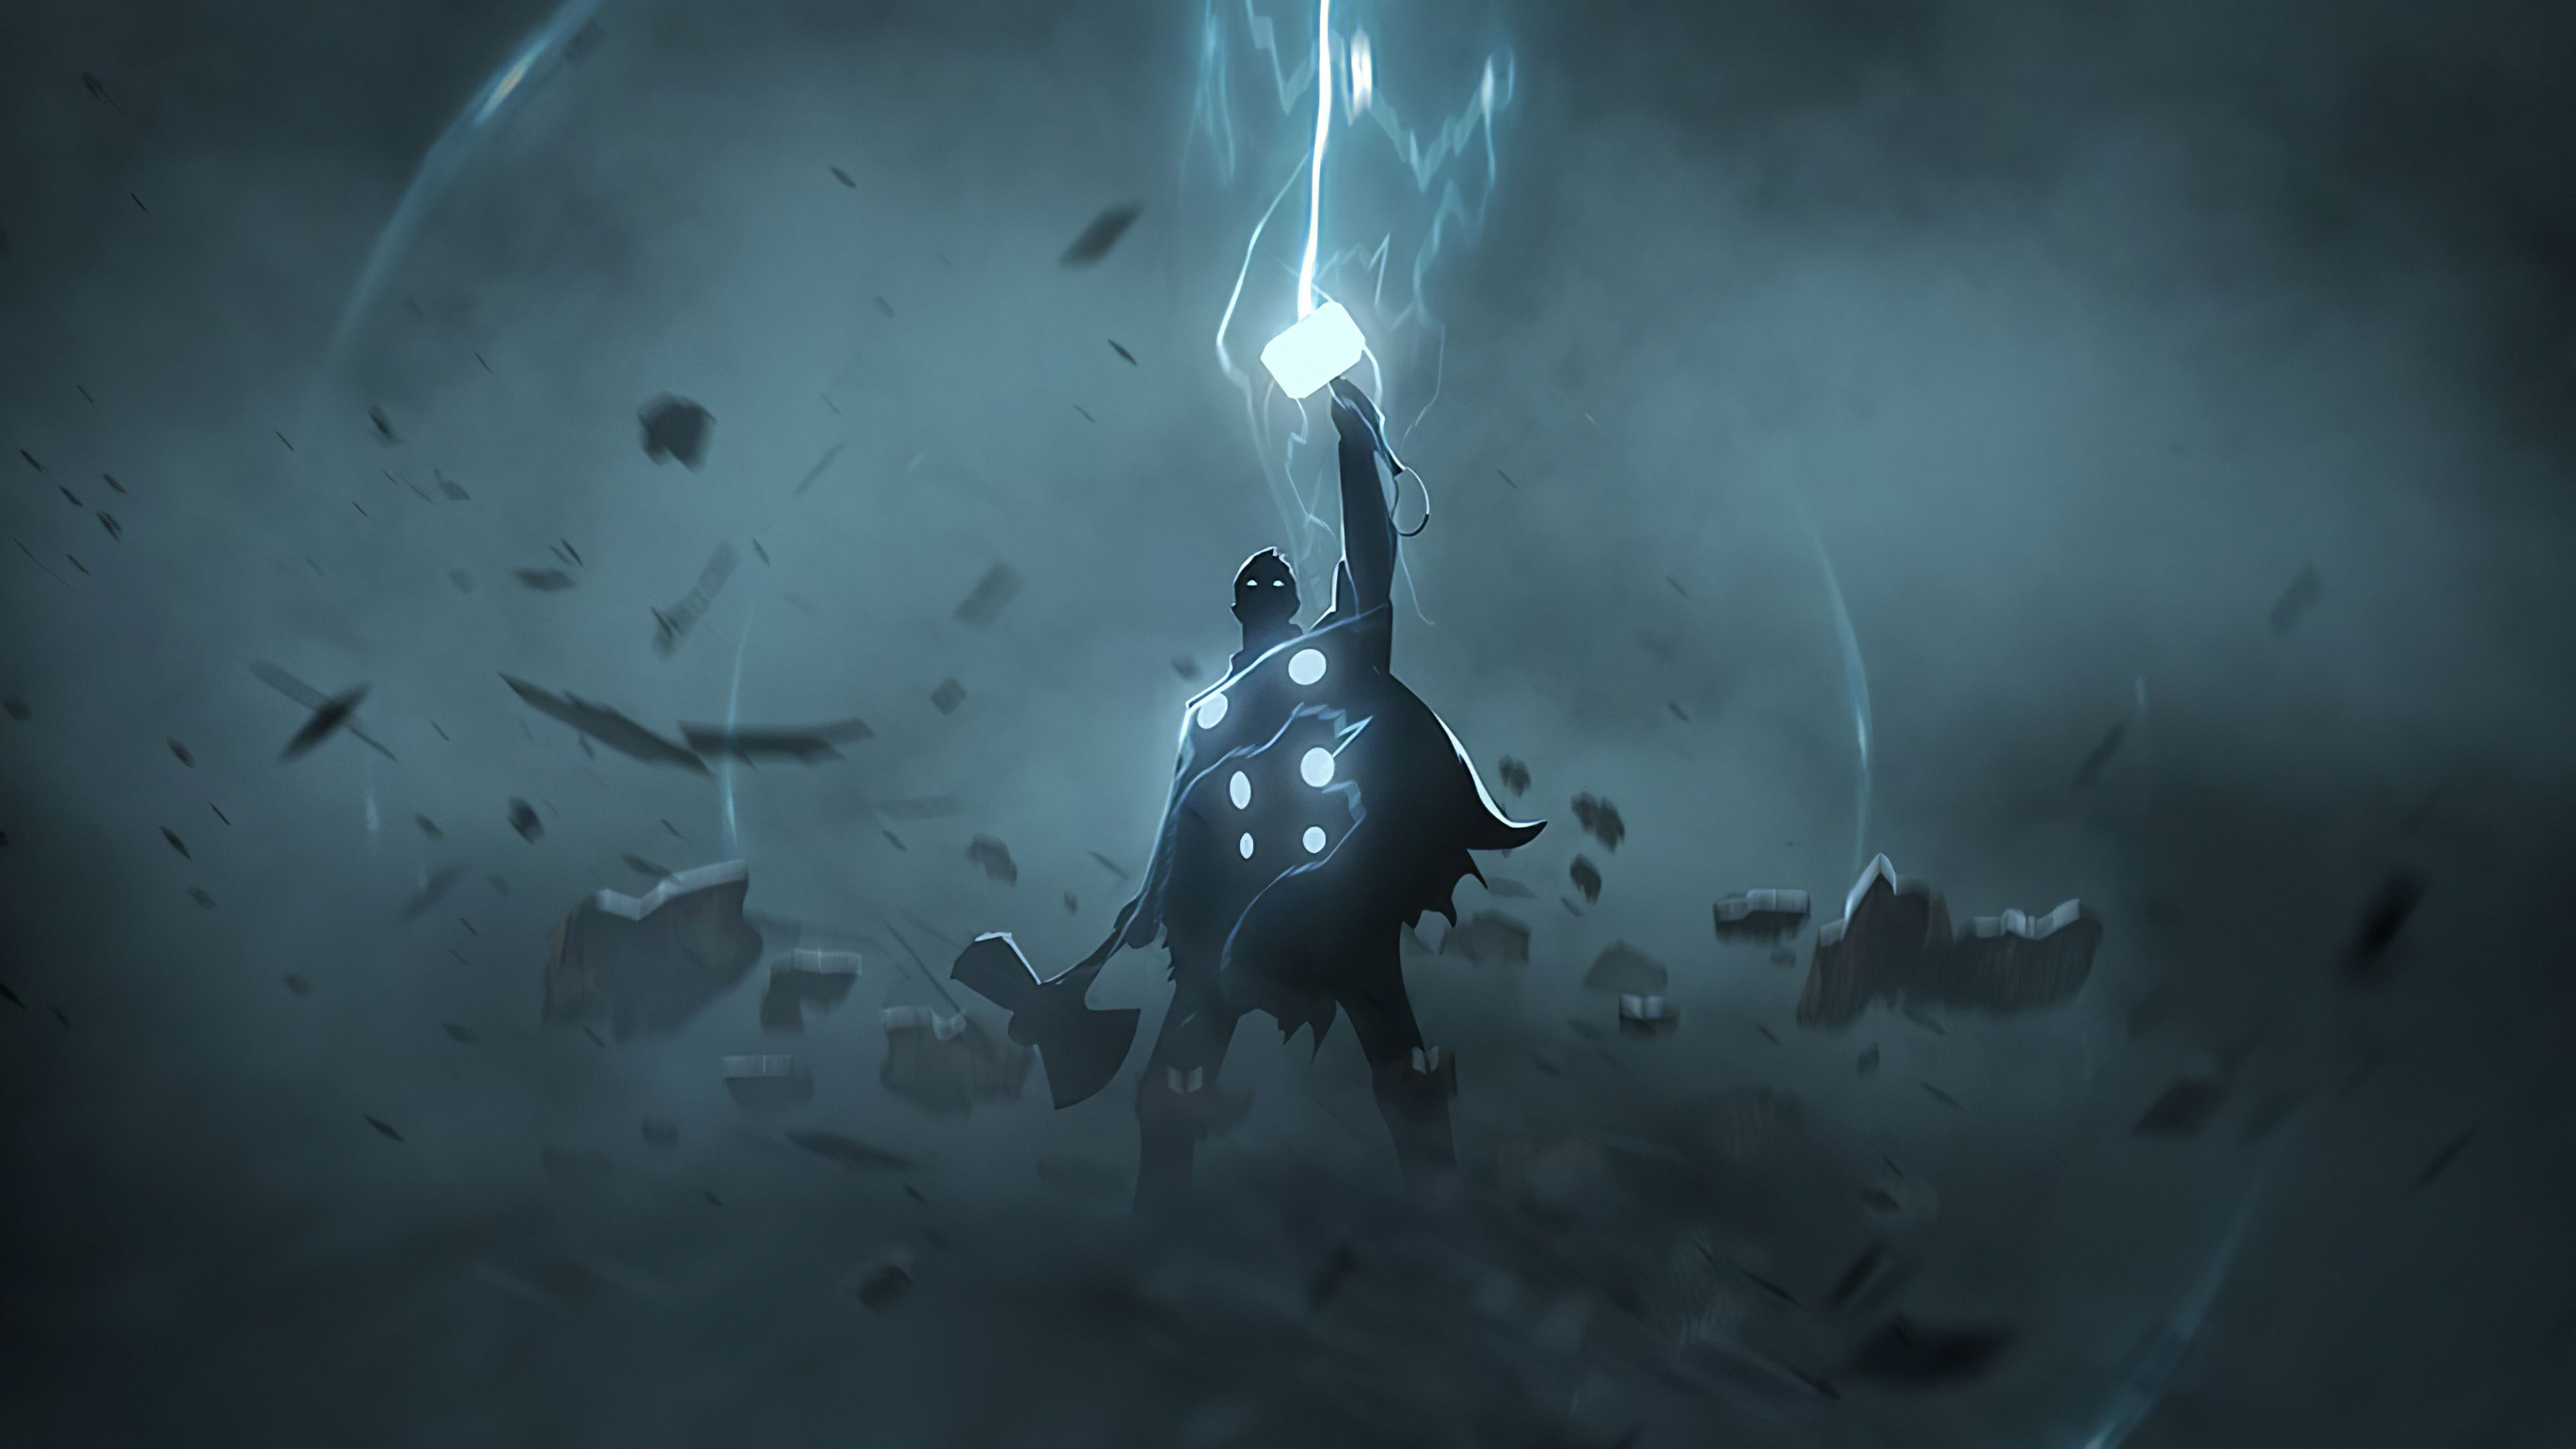 Thor Artwork 4k 2020, HD Superheroes, 4k Wallpapers, Image, Backgrounds, Photos and Pictures